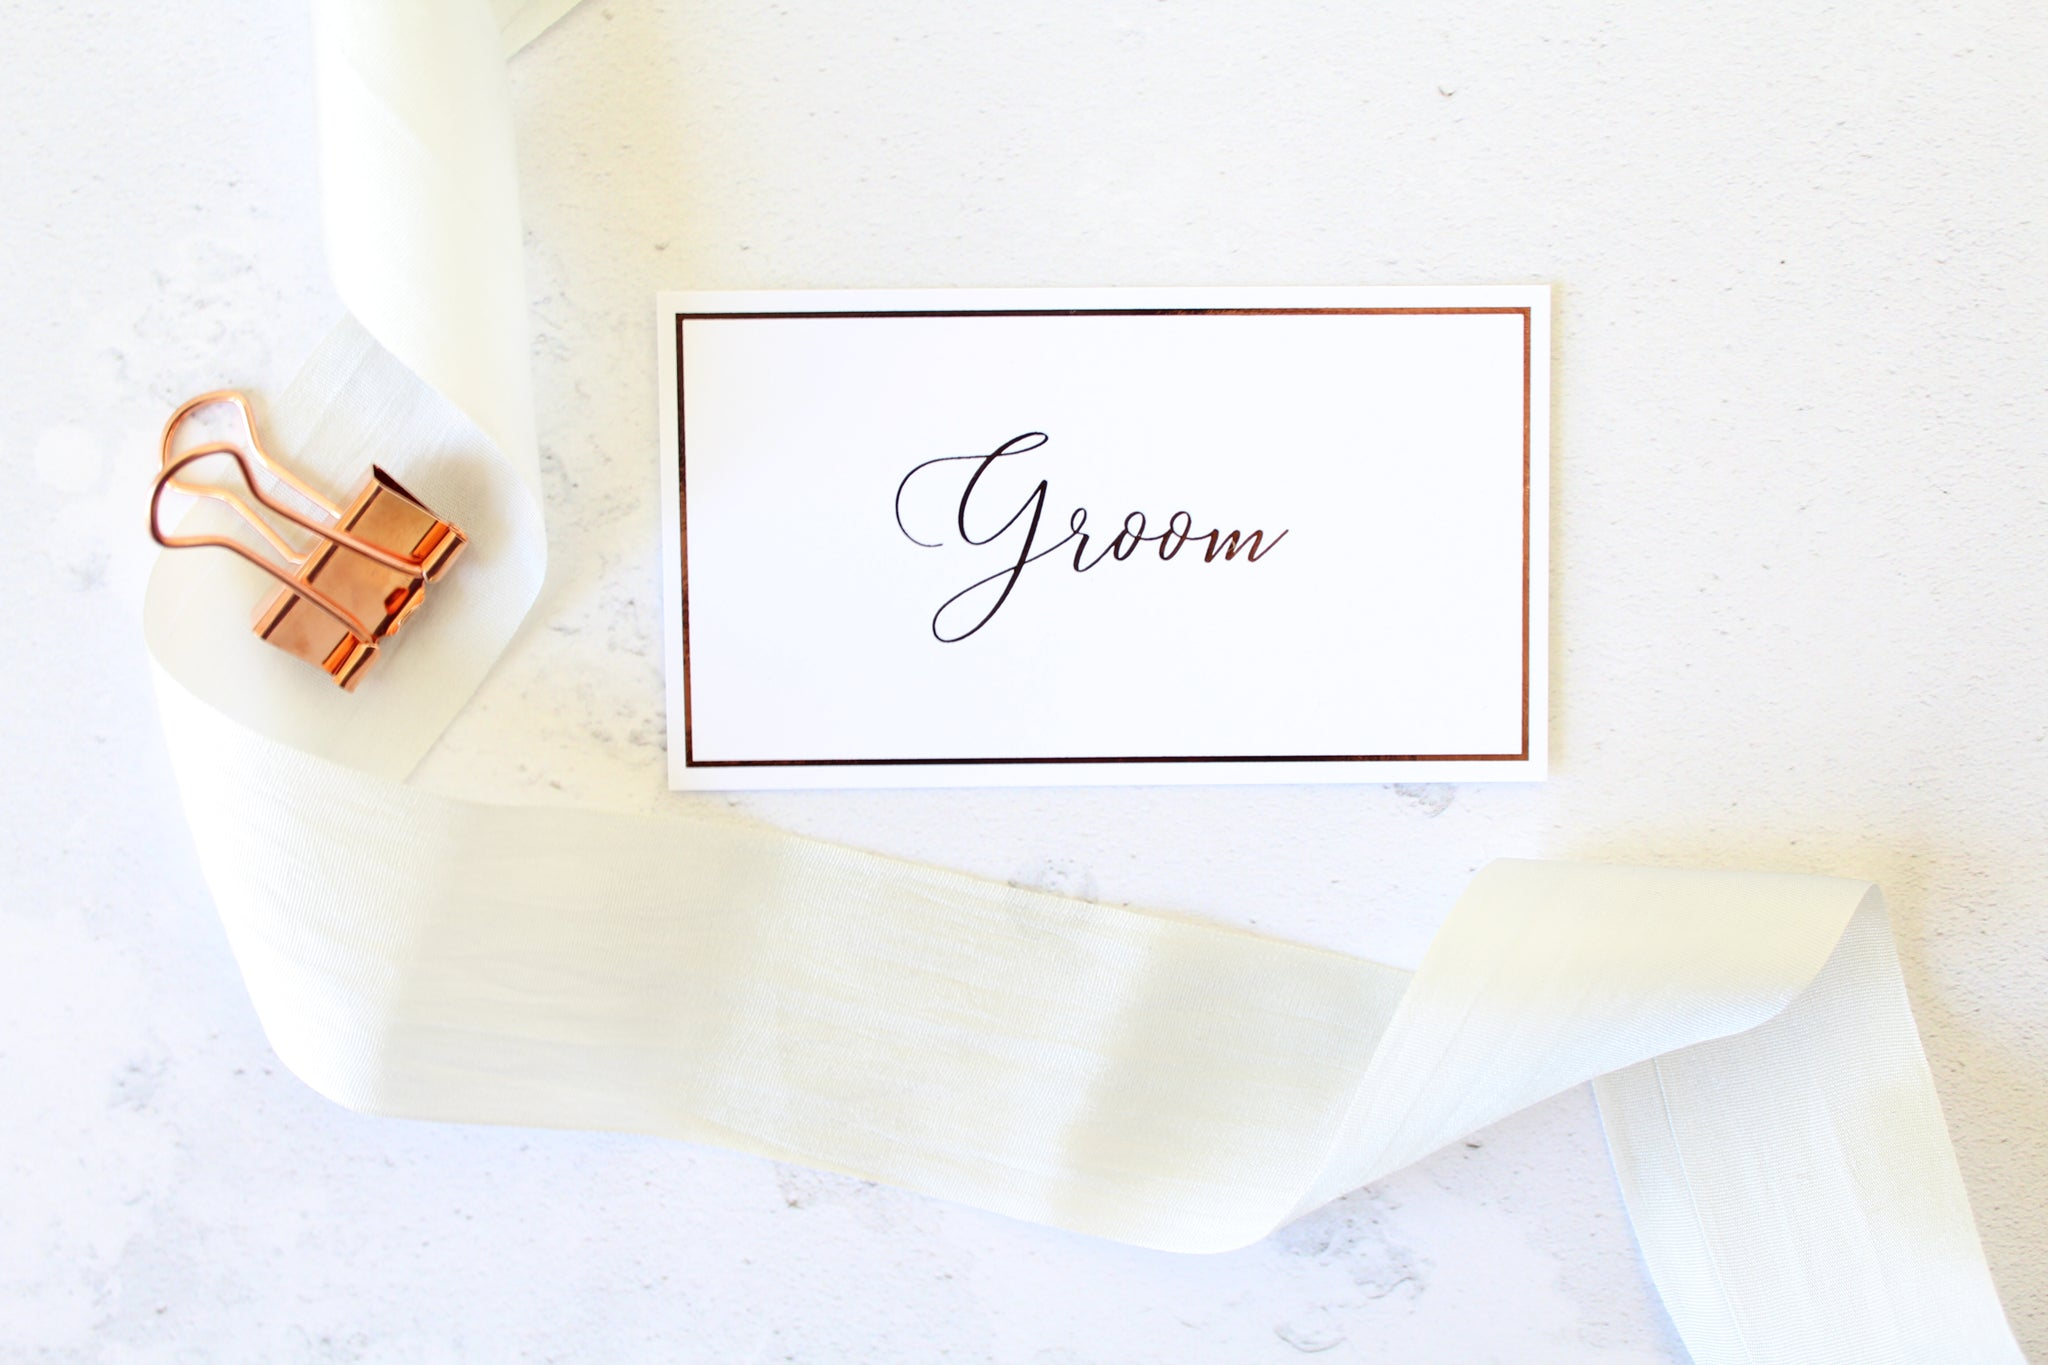 Foiled Wedding Flat Place Cards personalised with guests names from the Romance Collection by Confetti Sweethearts